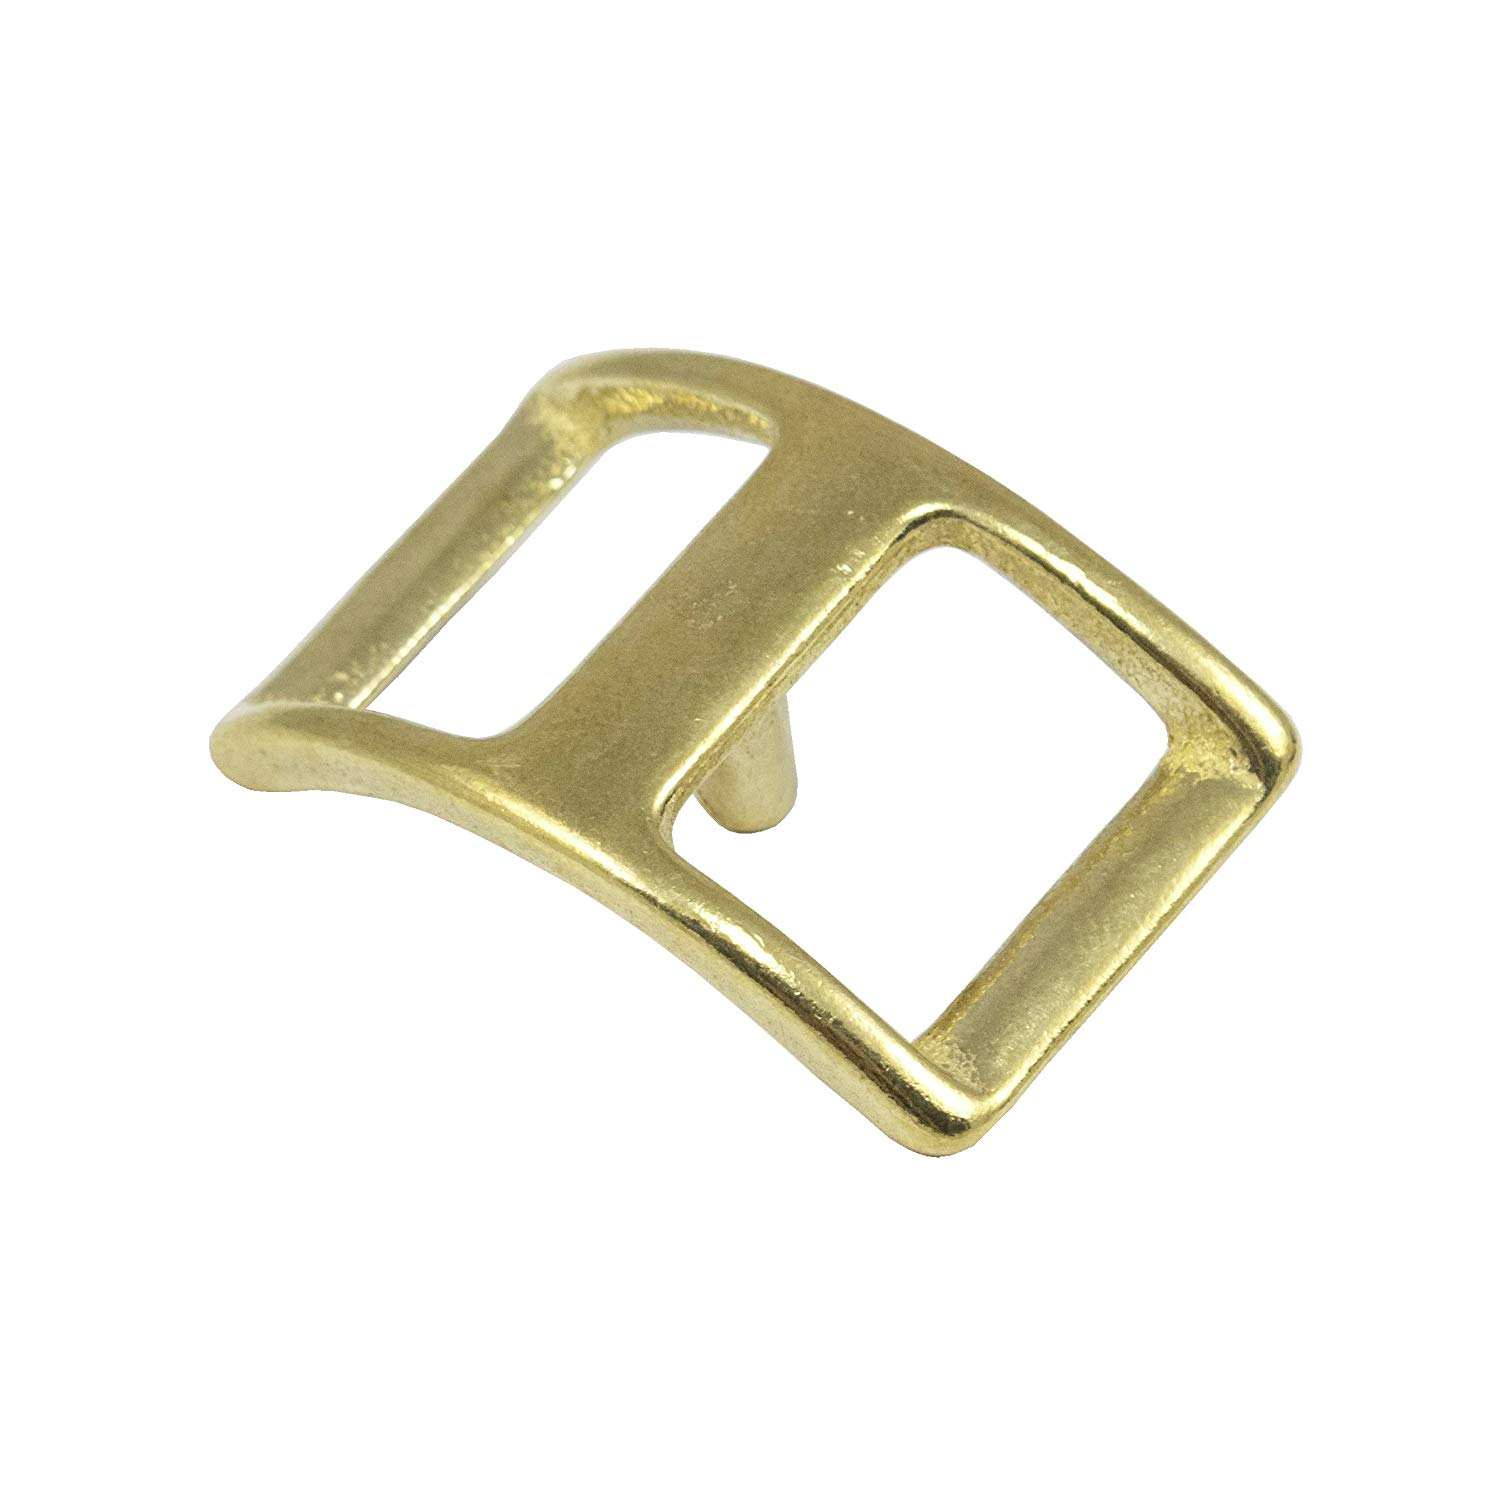 "Springfield Leather Company 3/4"" Solid Brass Conway Buckle"